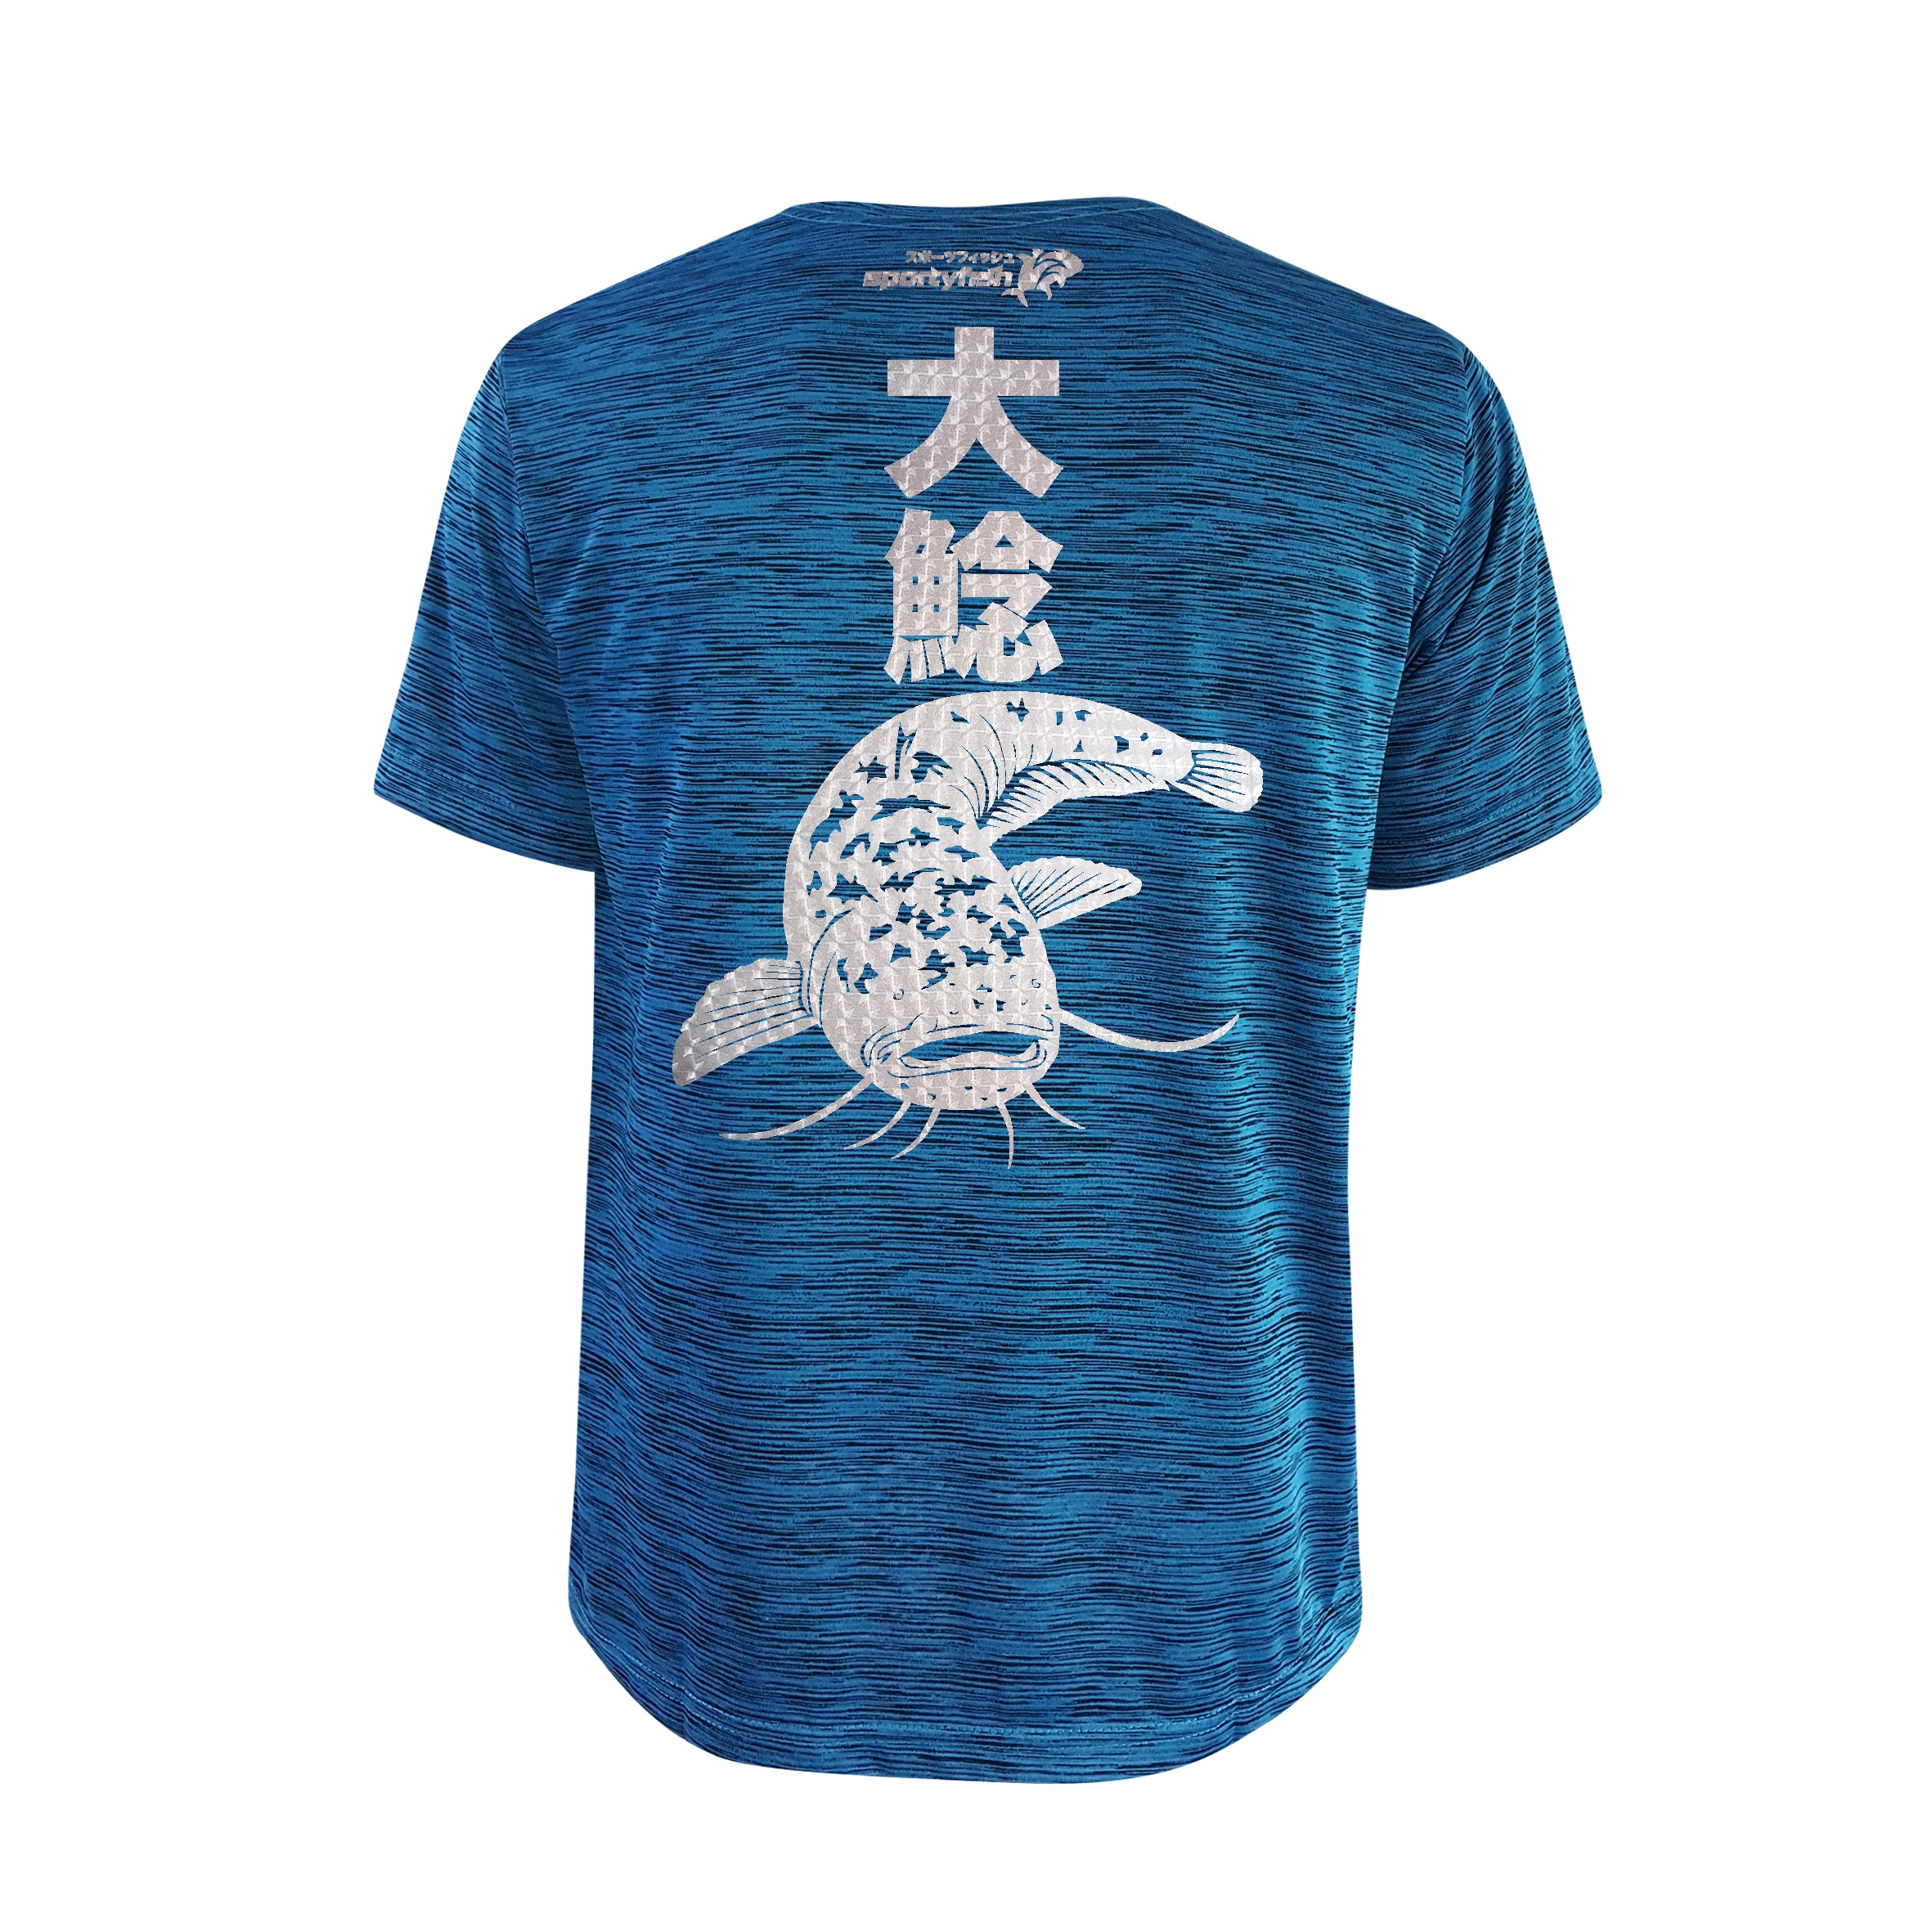 Bold Series Turquoise T-shirt(SS): The Wels Catfish(Monster Wels)(In Japanese Words)